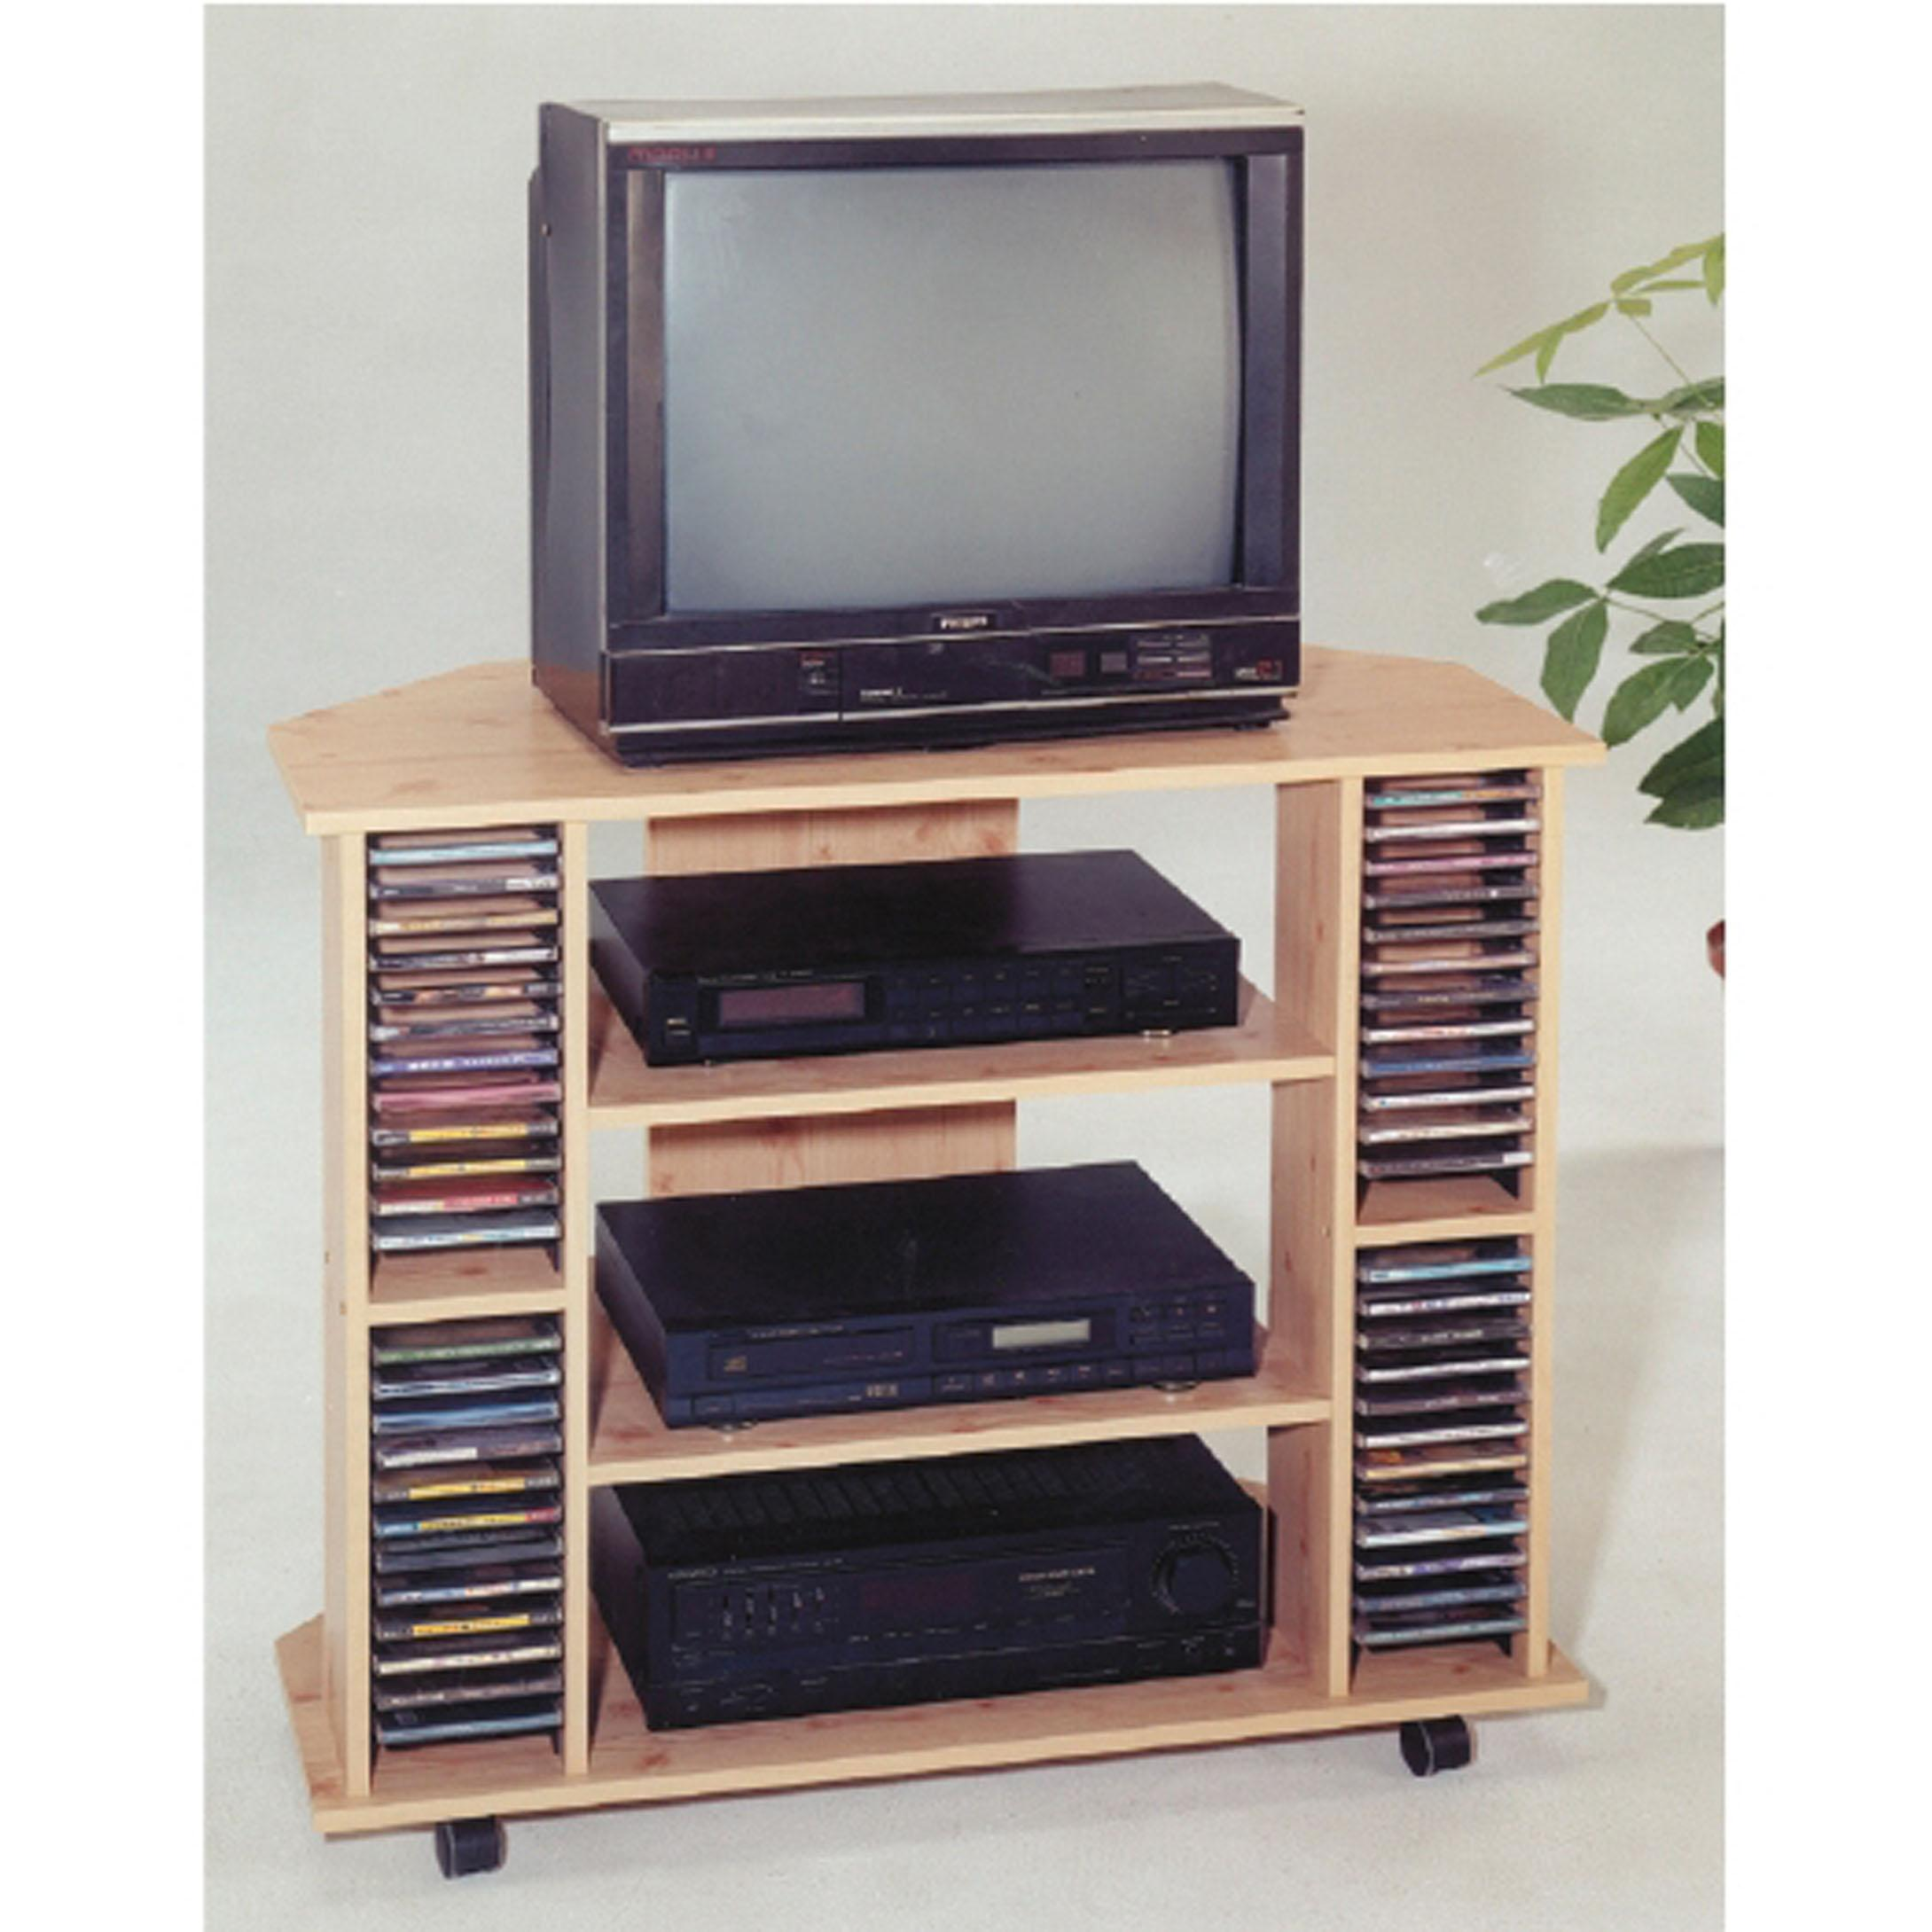 ORE International Wooden TV Stand By OJ Commerce 13999